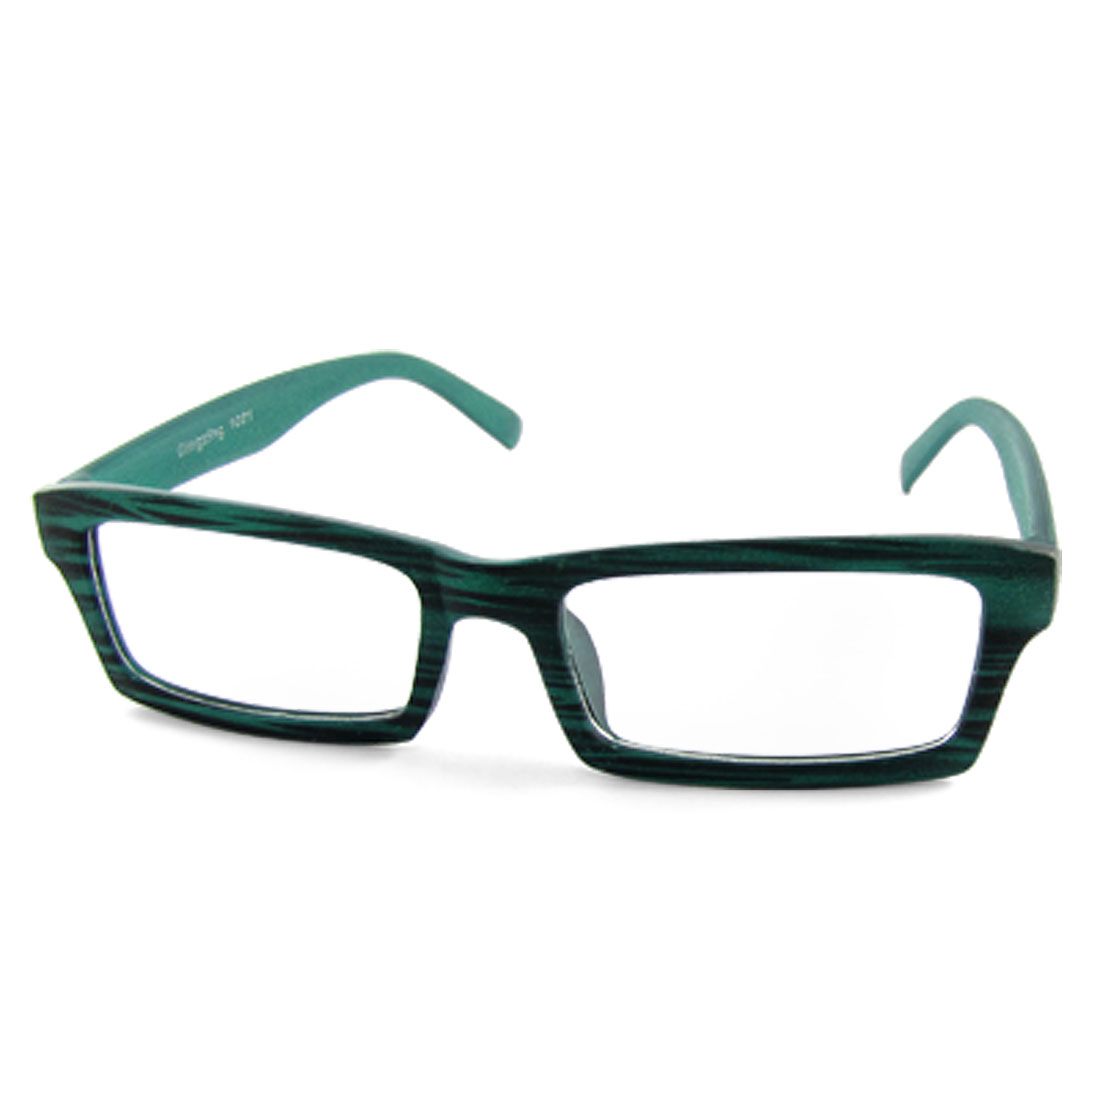 1021 Turquoise Green Wood Grain Frame Eyewear Plain Glasses Spectacles